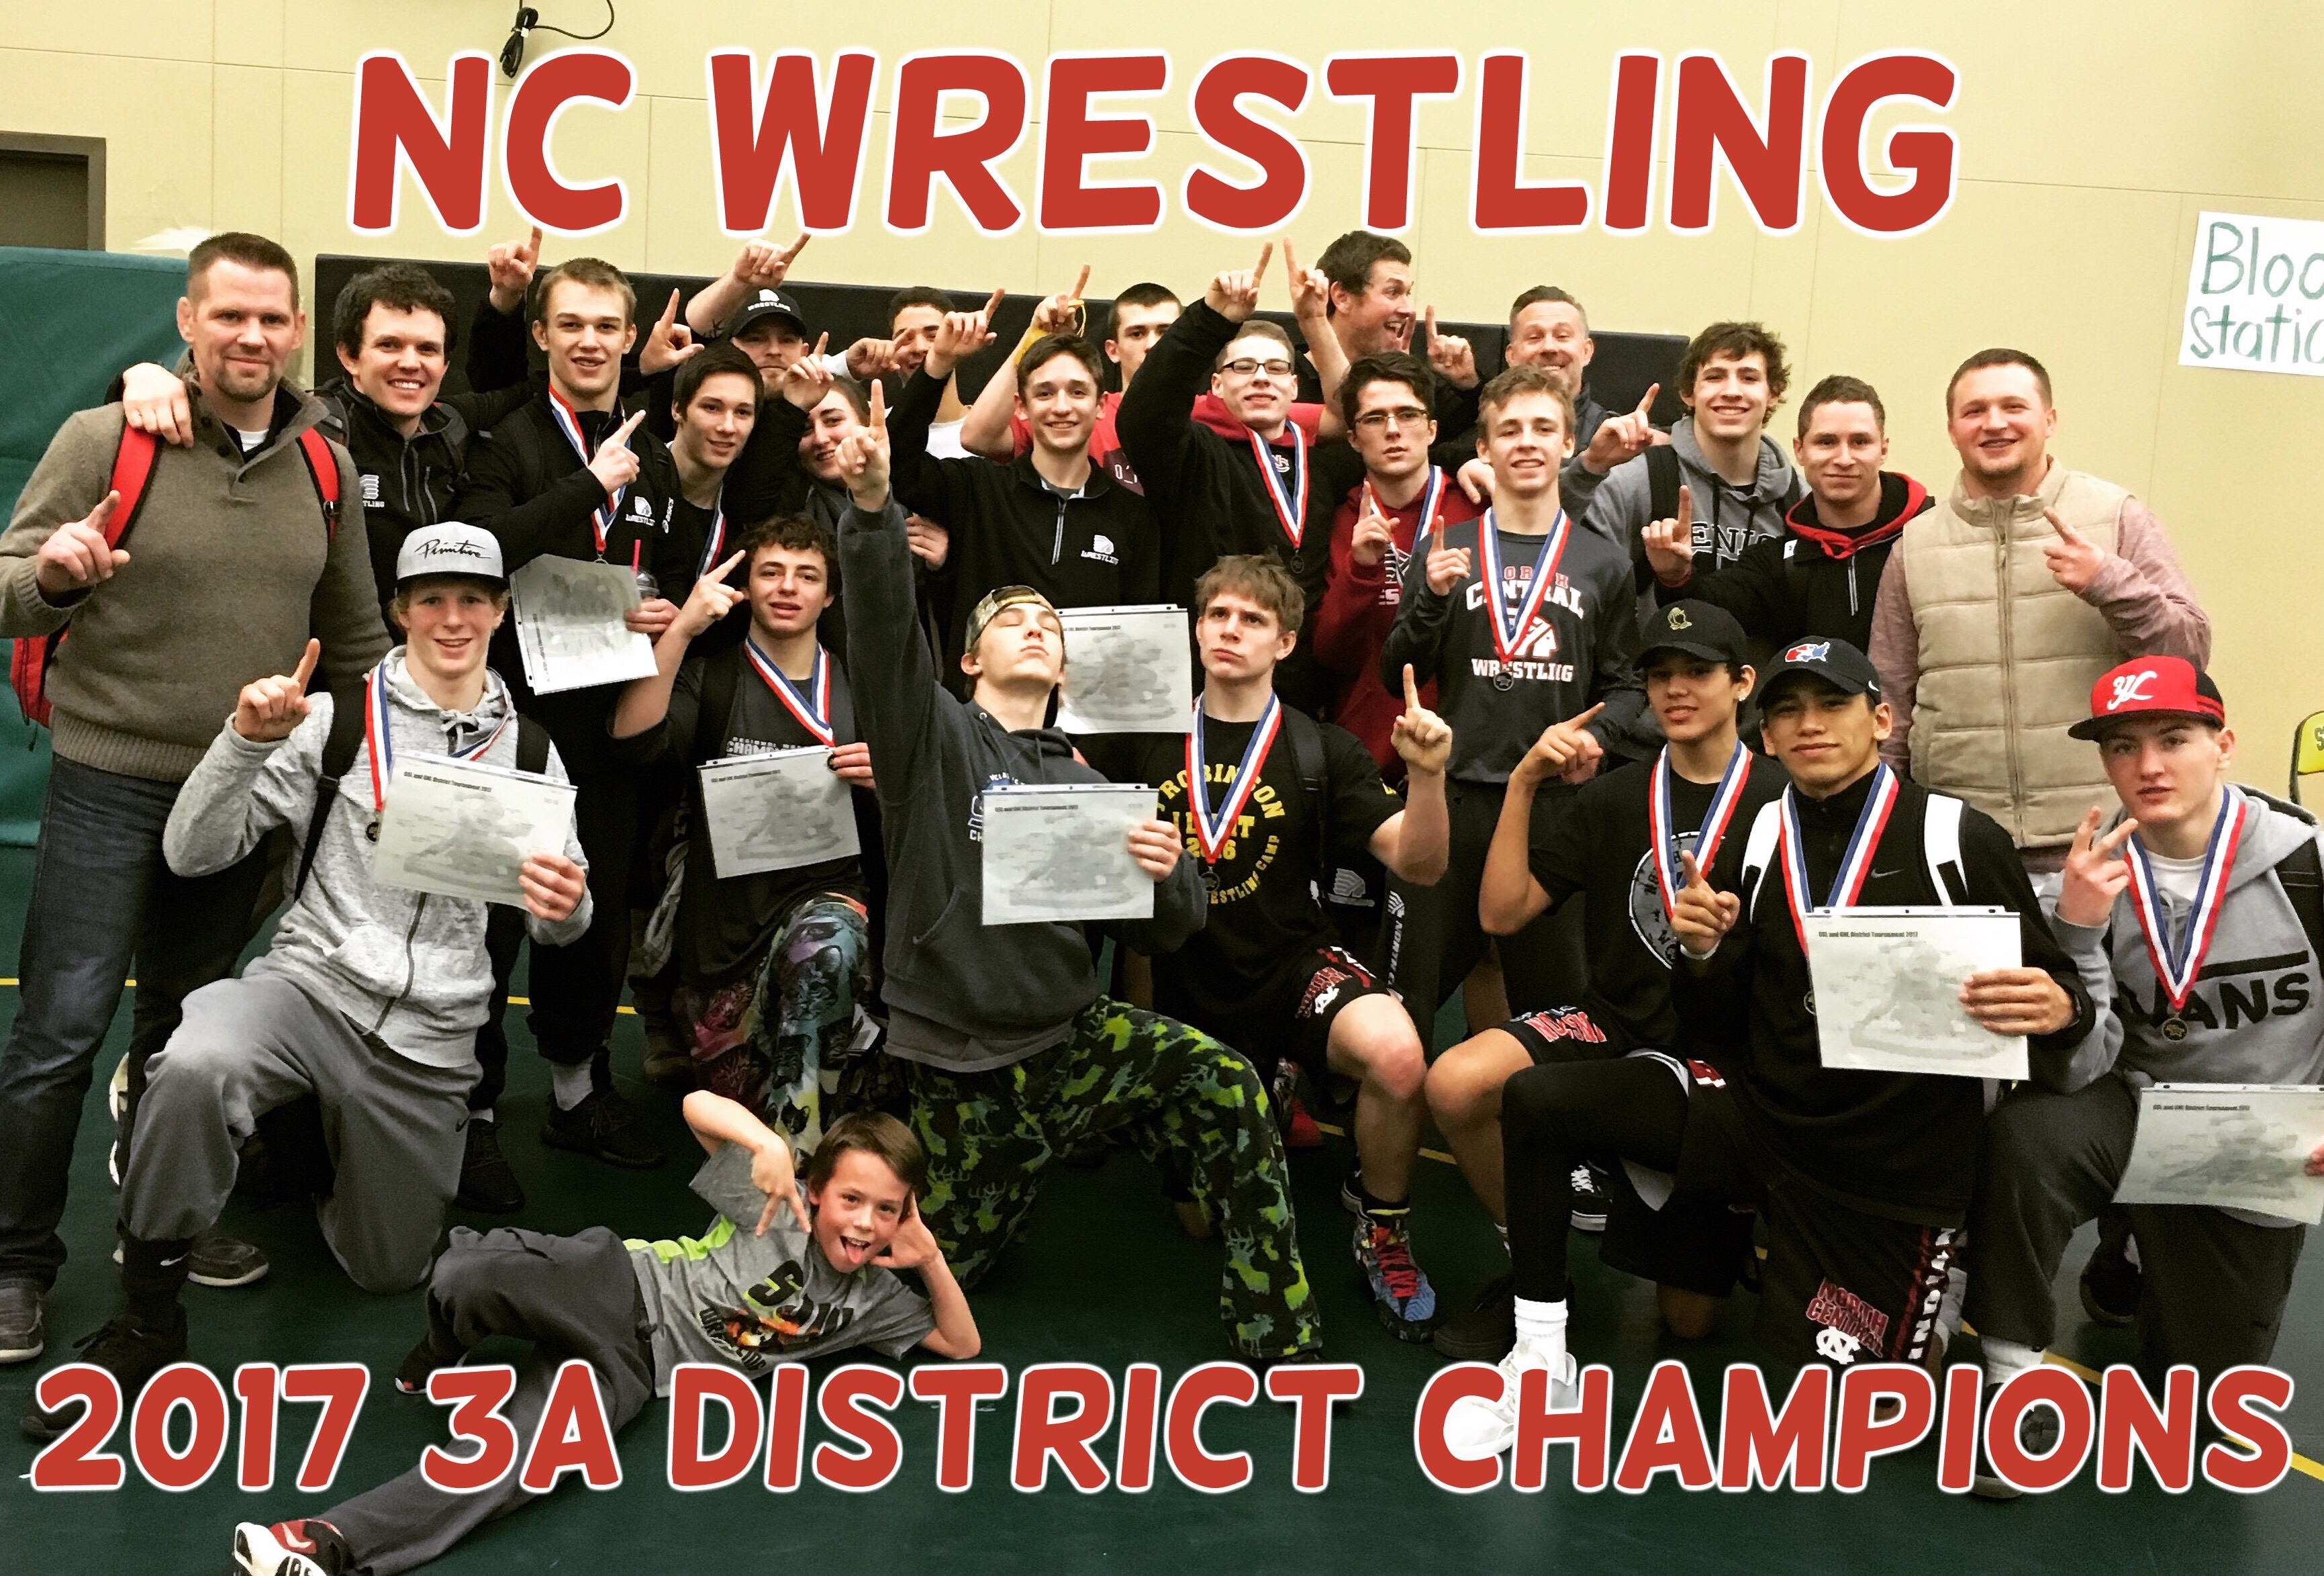 District Team Champions